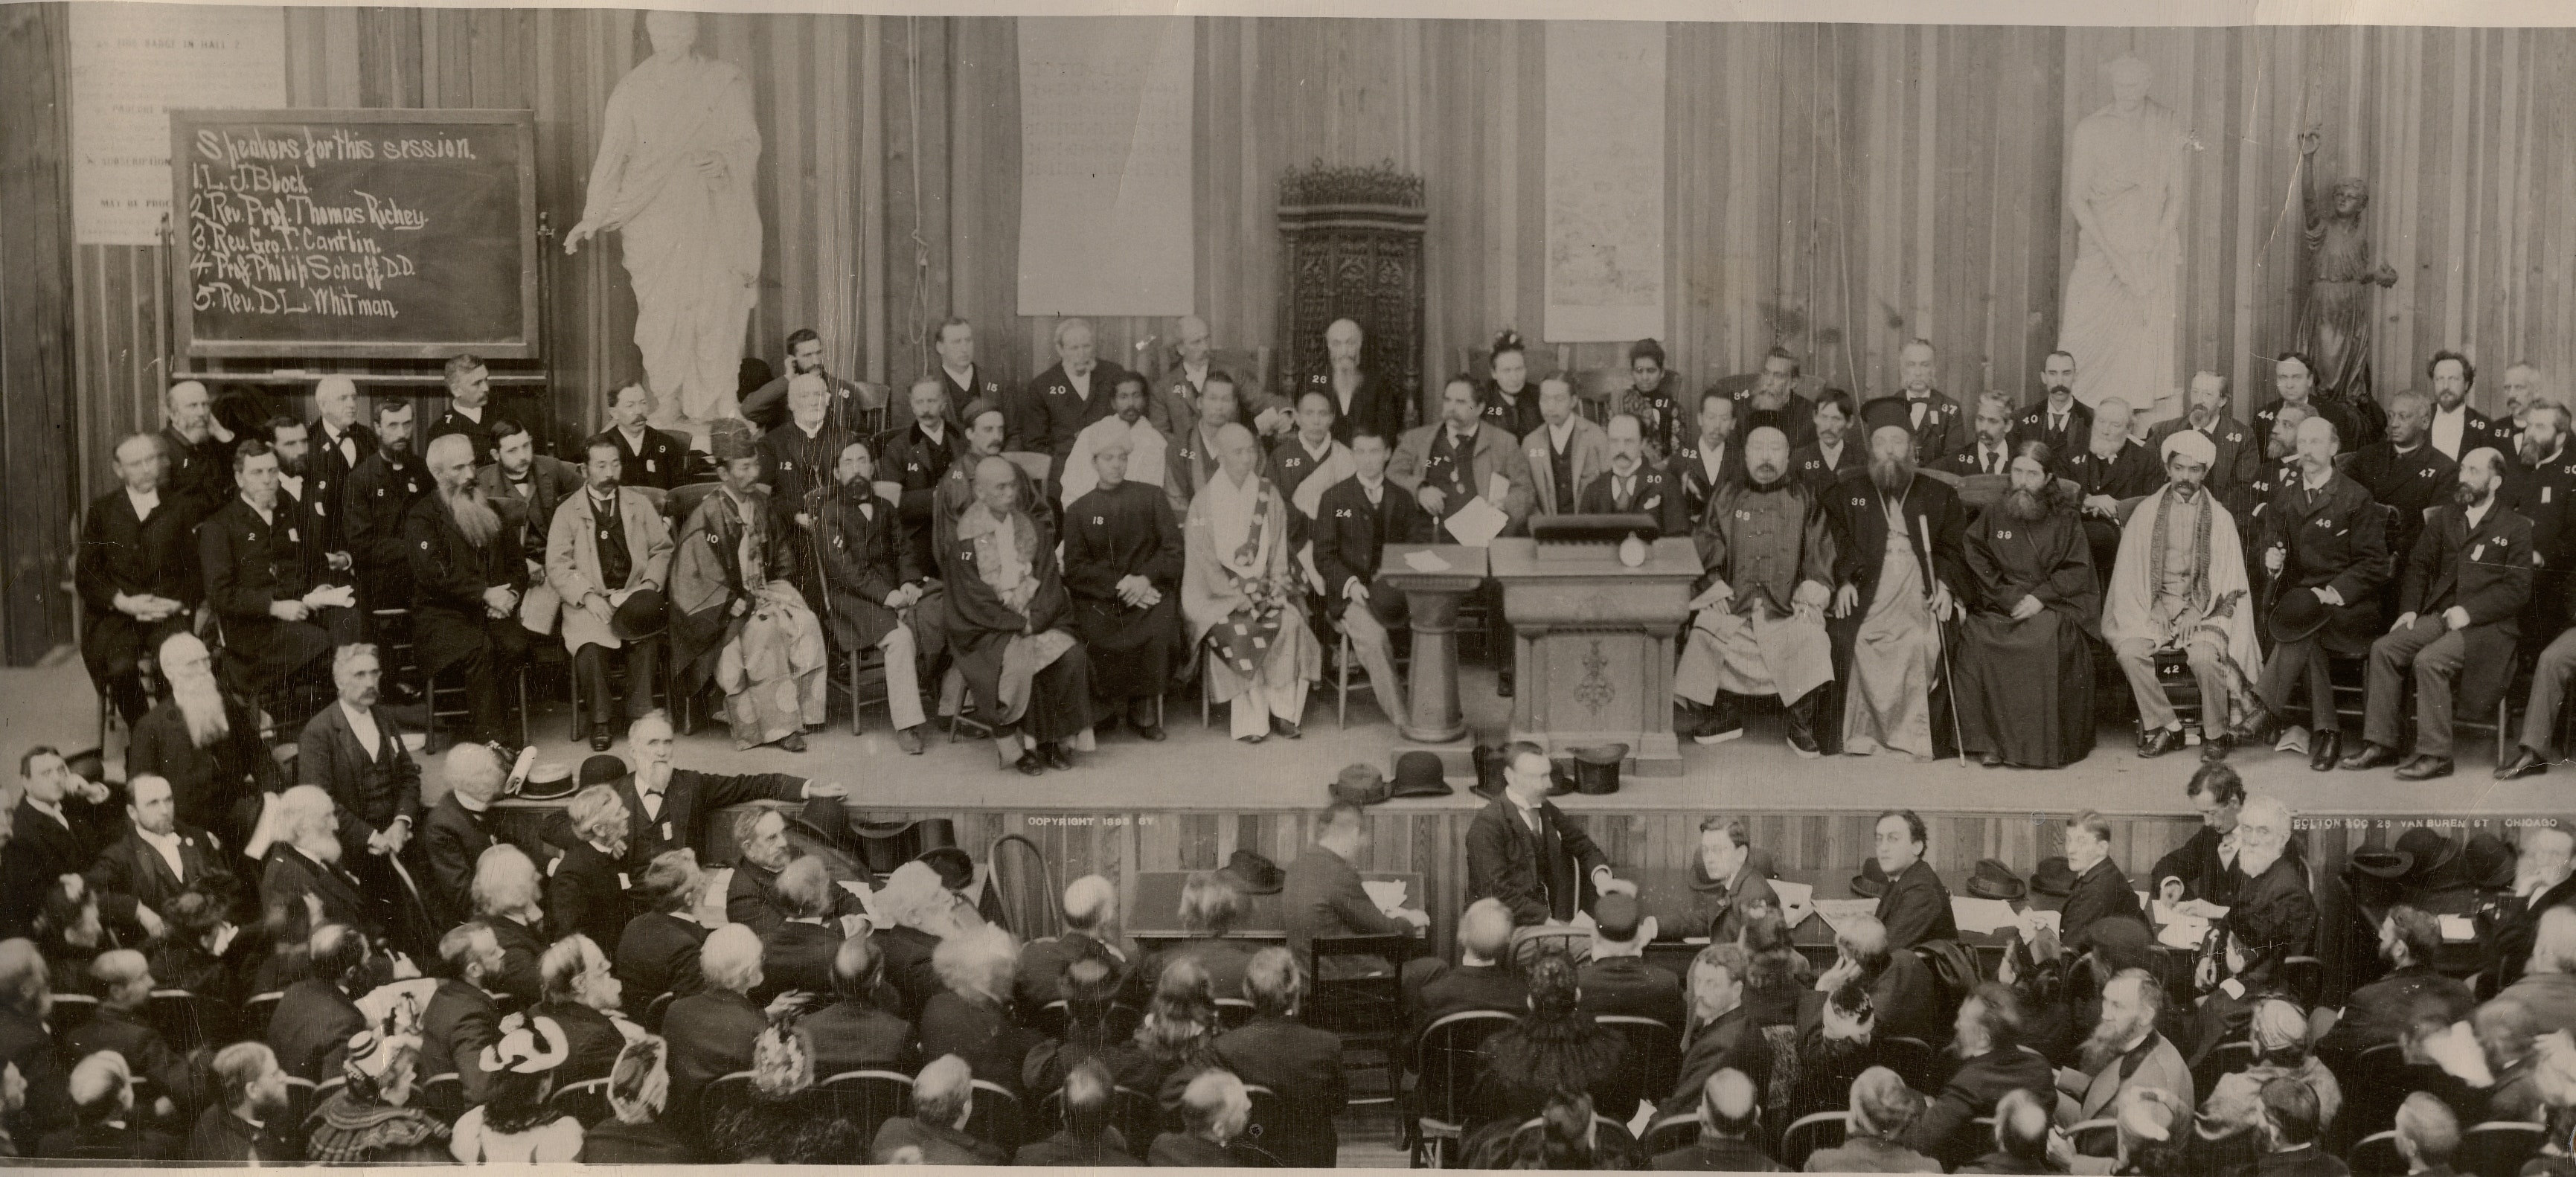 Photo of 1893 World's Parliament of Religion